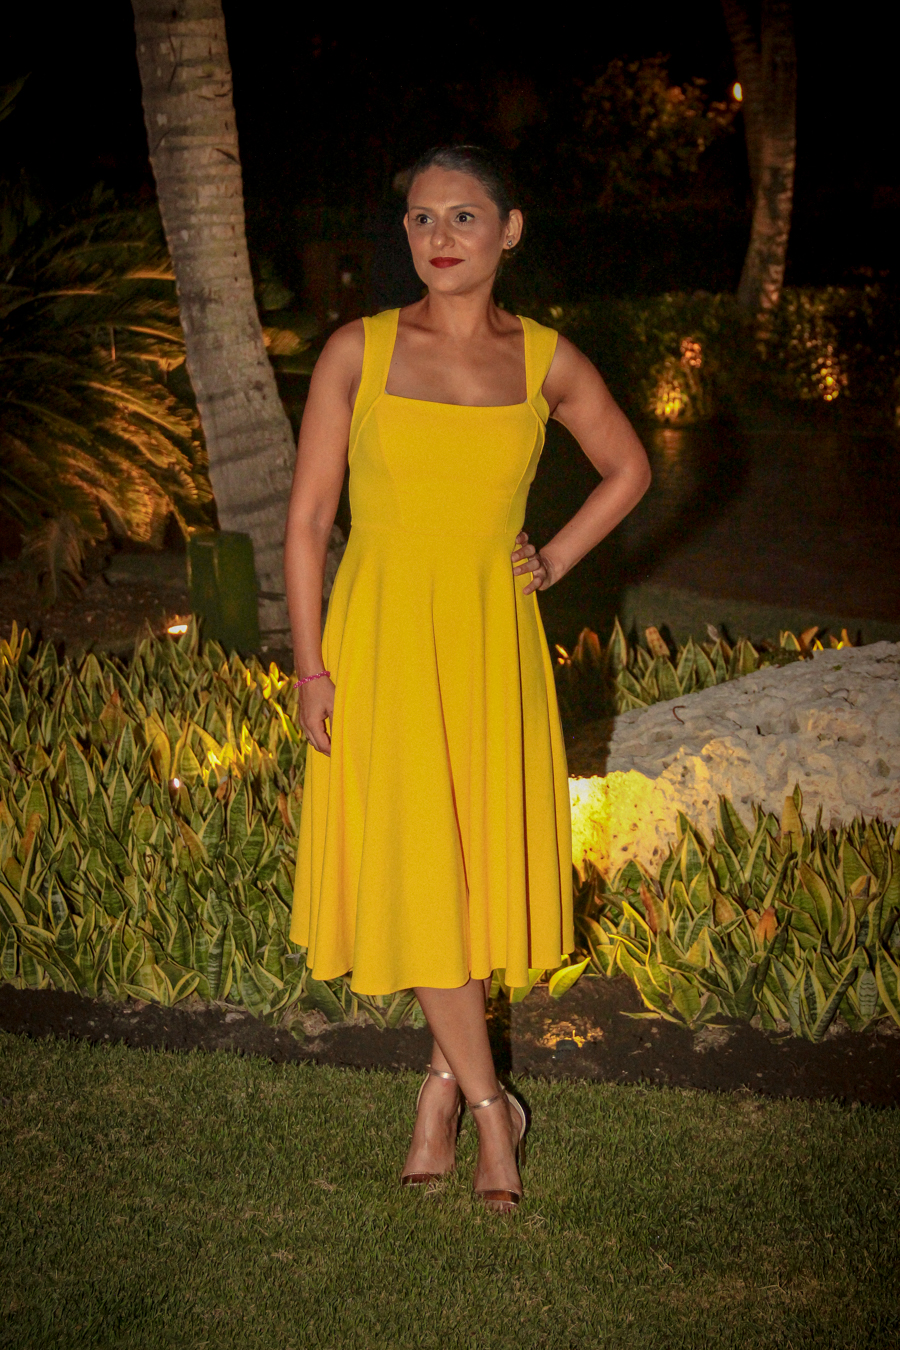 Time Out - Me in a yellow dress, ready for dinner